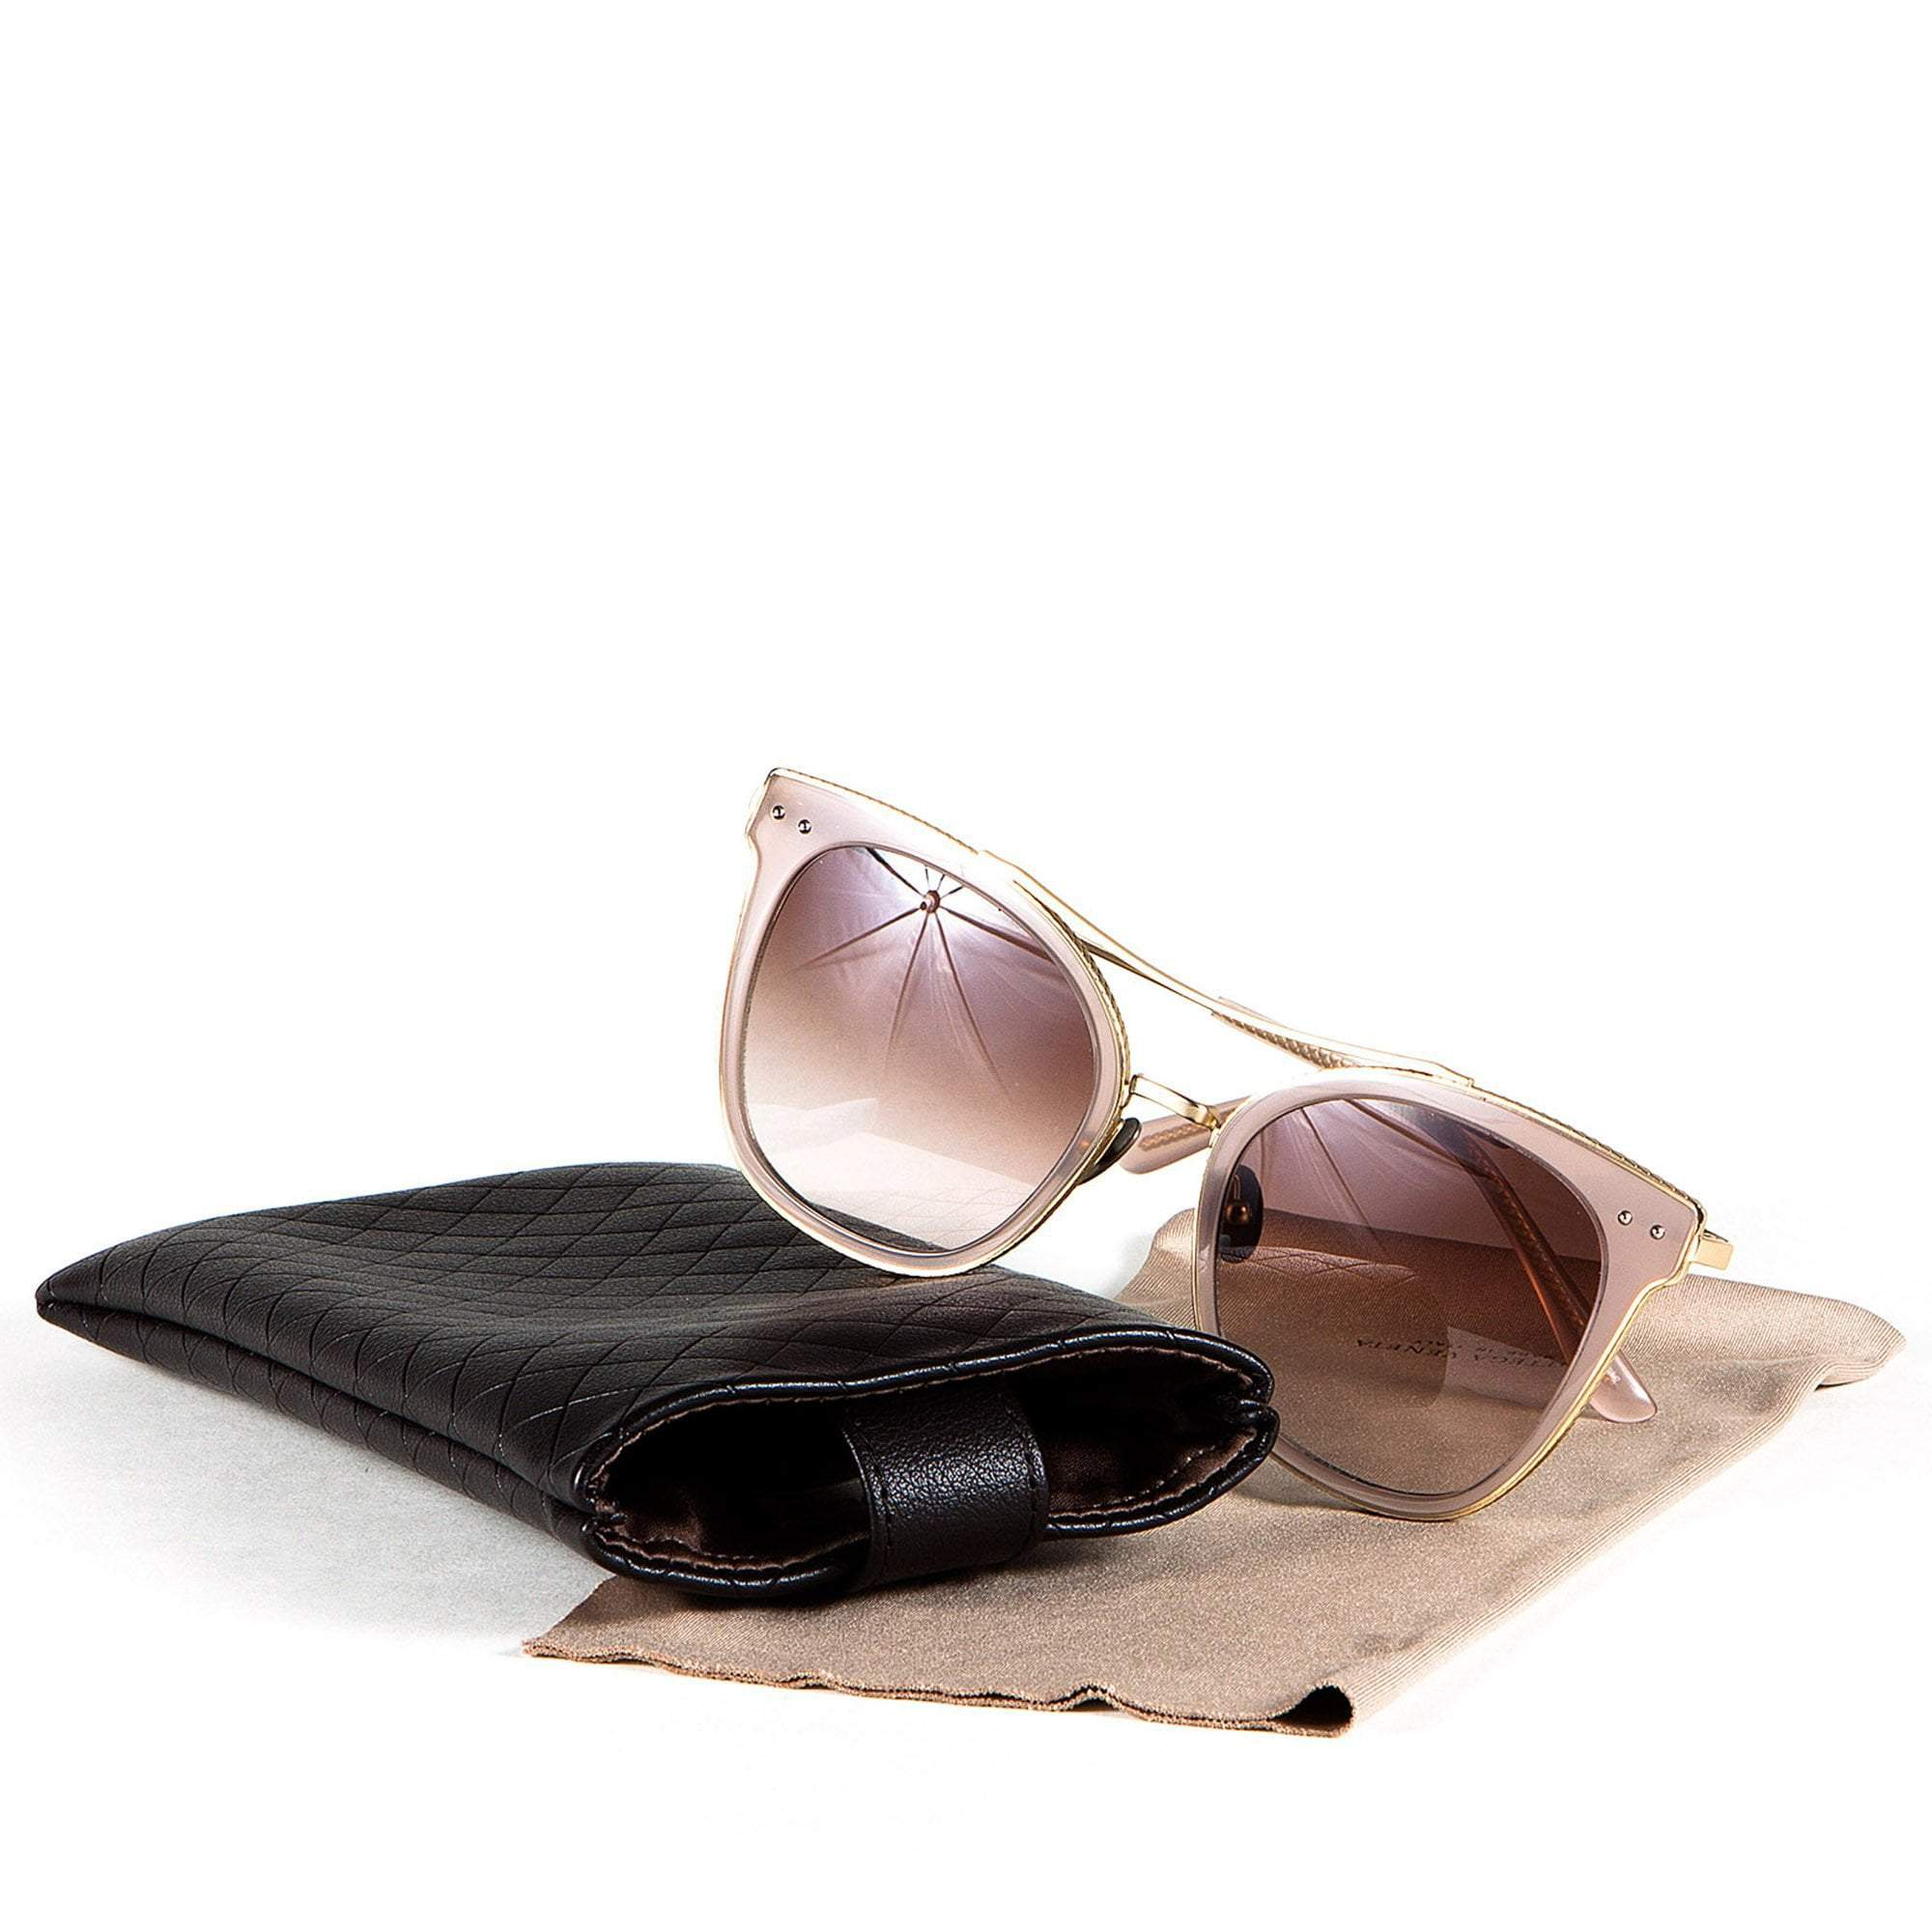 Bottega Veneta Sunglasses